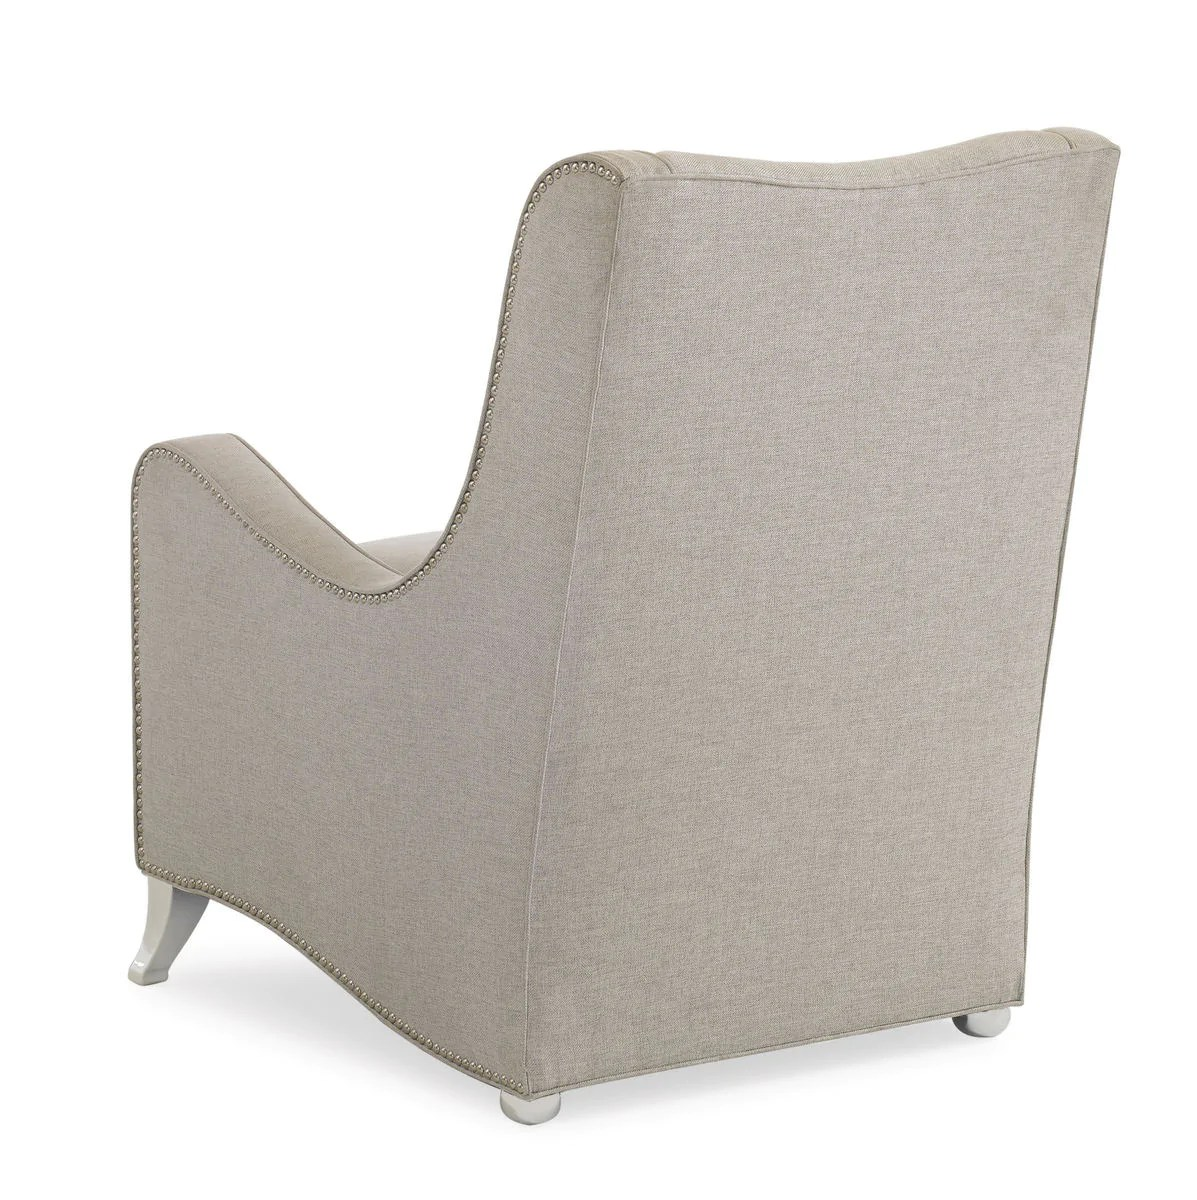 office chair that sits higher affordable upholstered dining chairs clementine high back sitting max sparrow